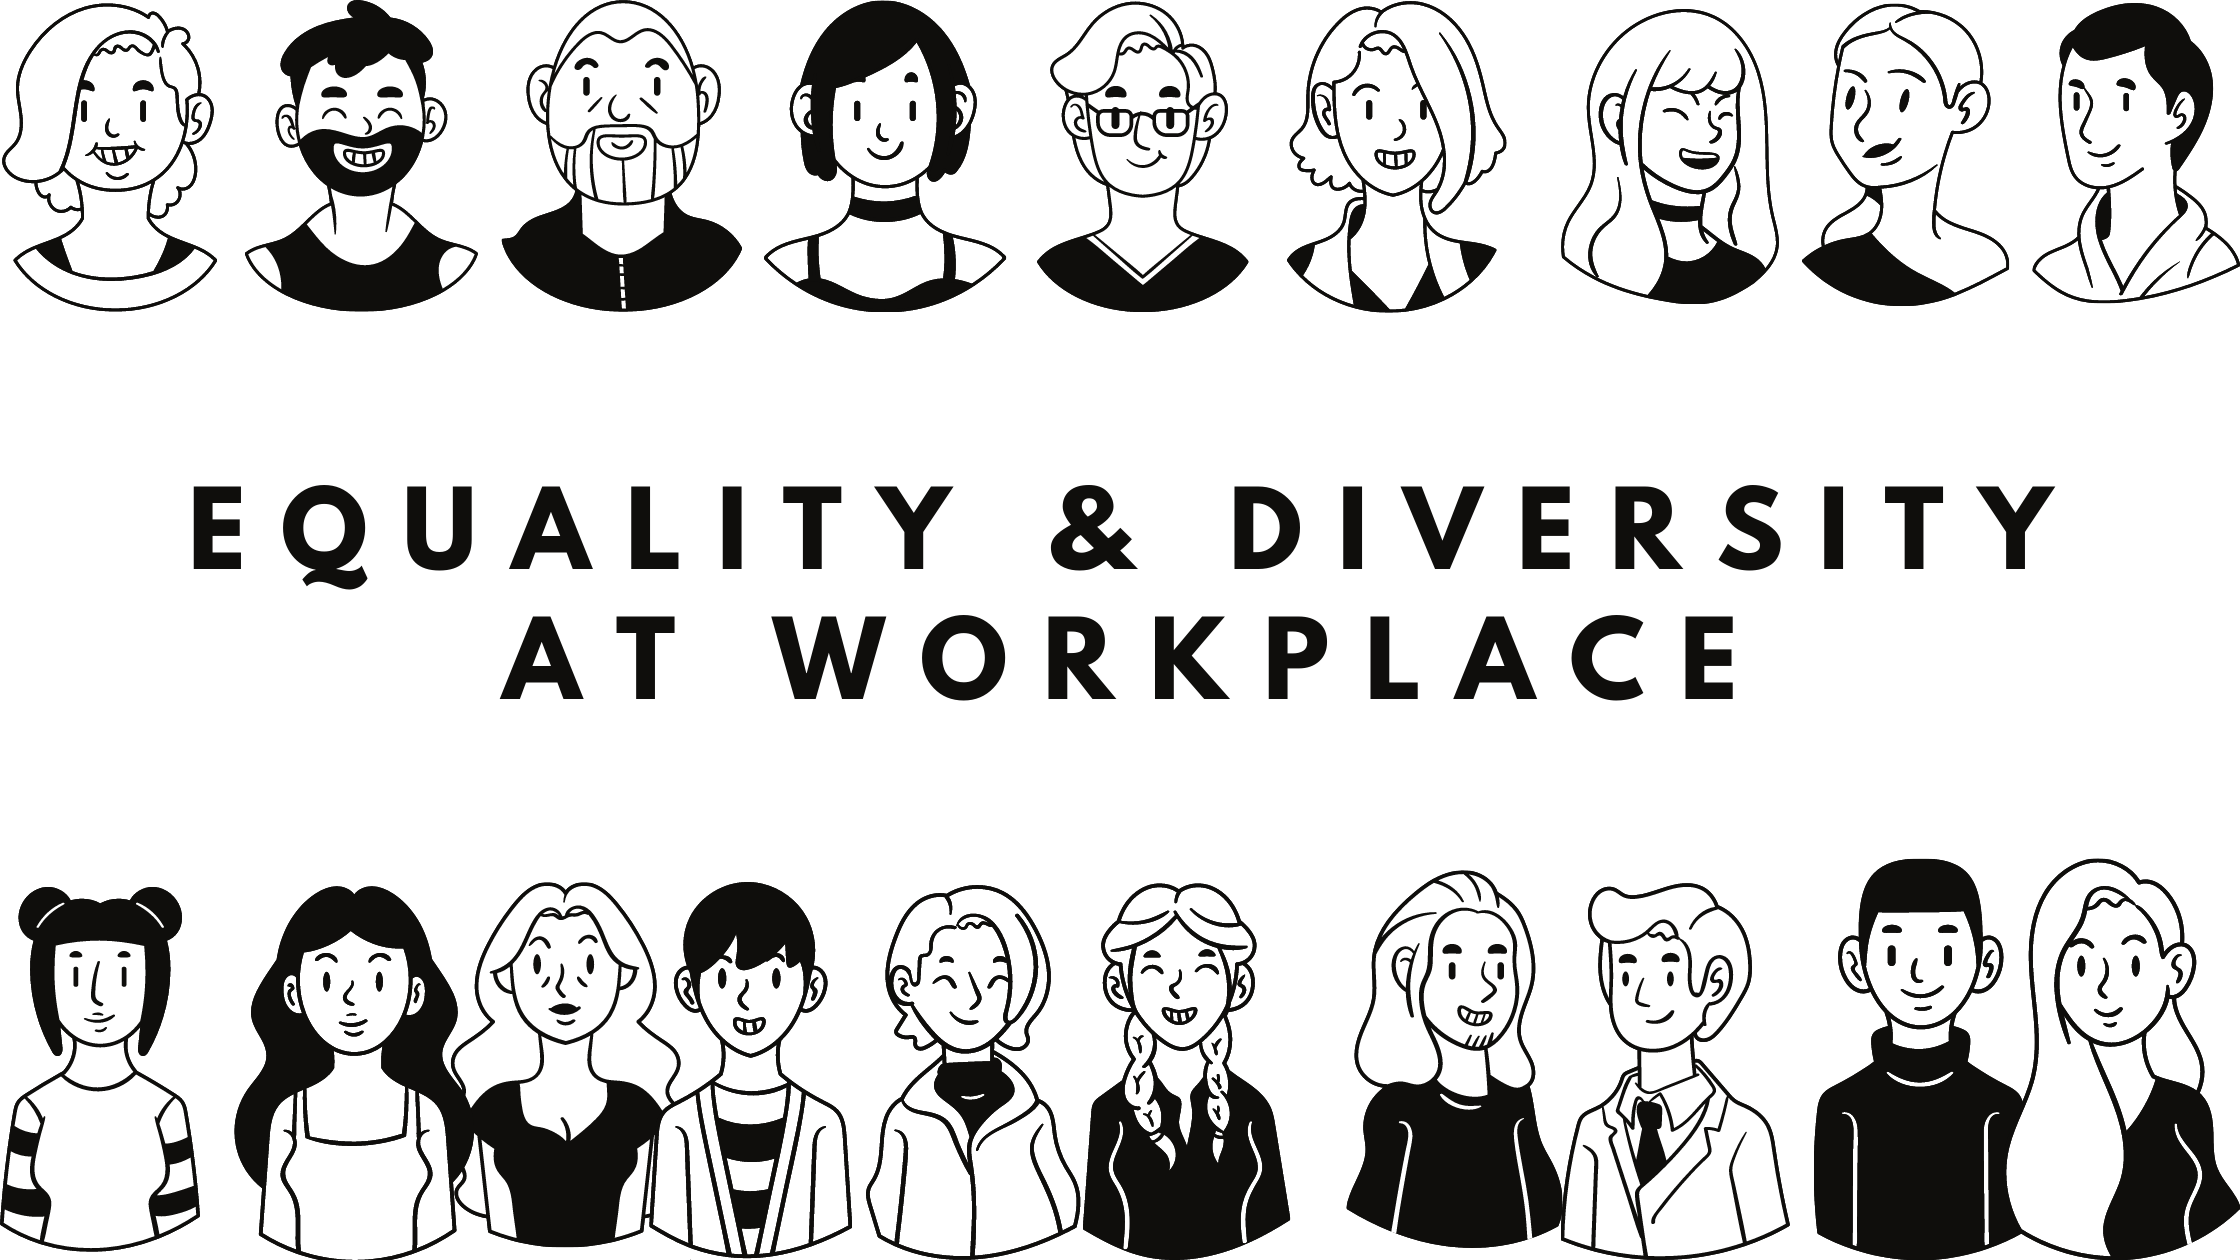 How to Promote Equality and Diversity in the Workplace_